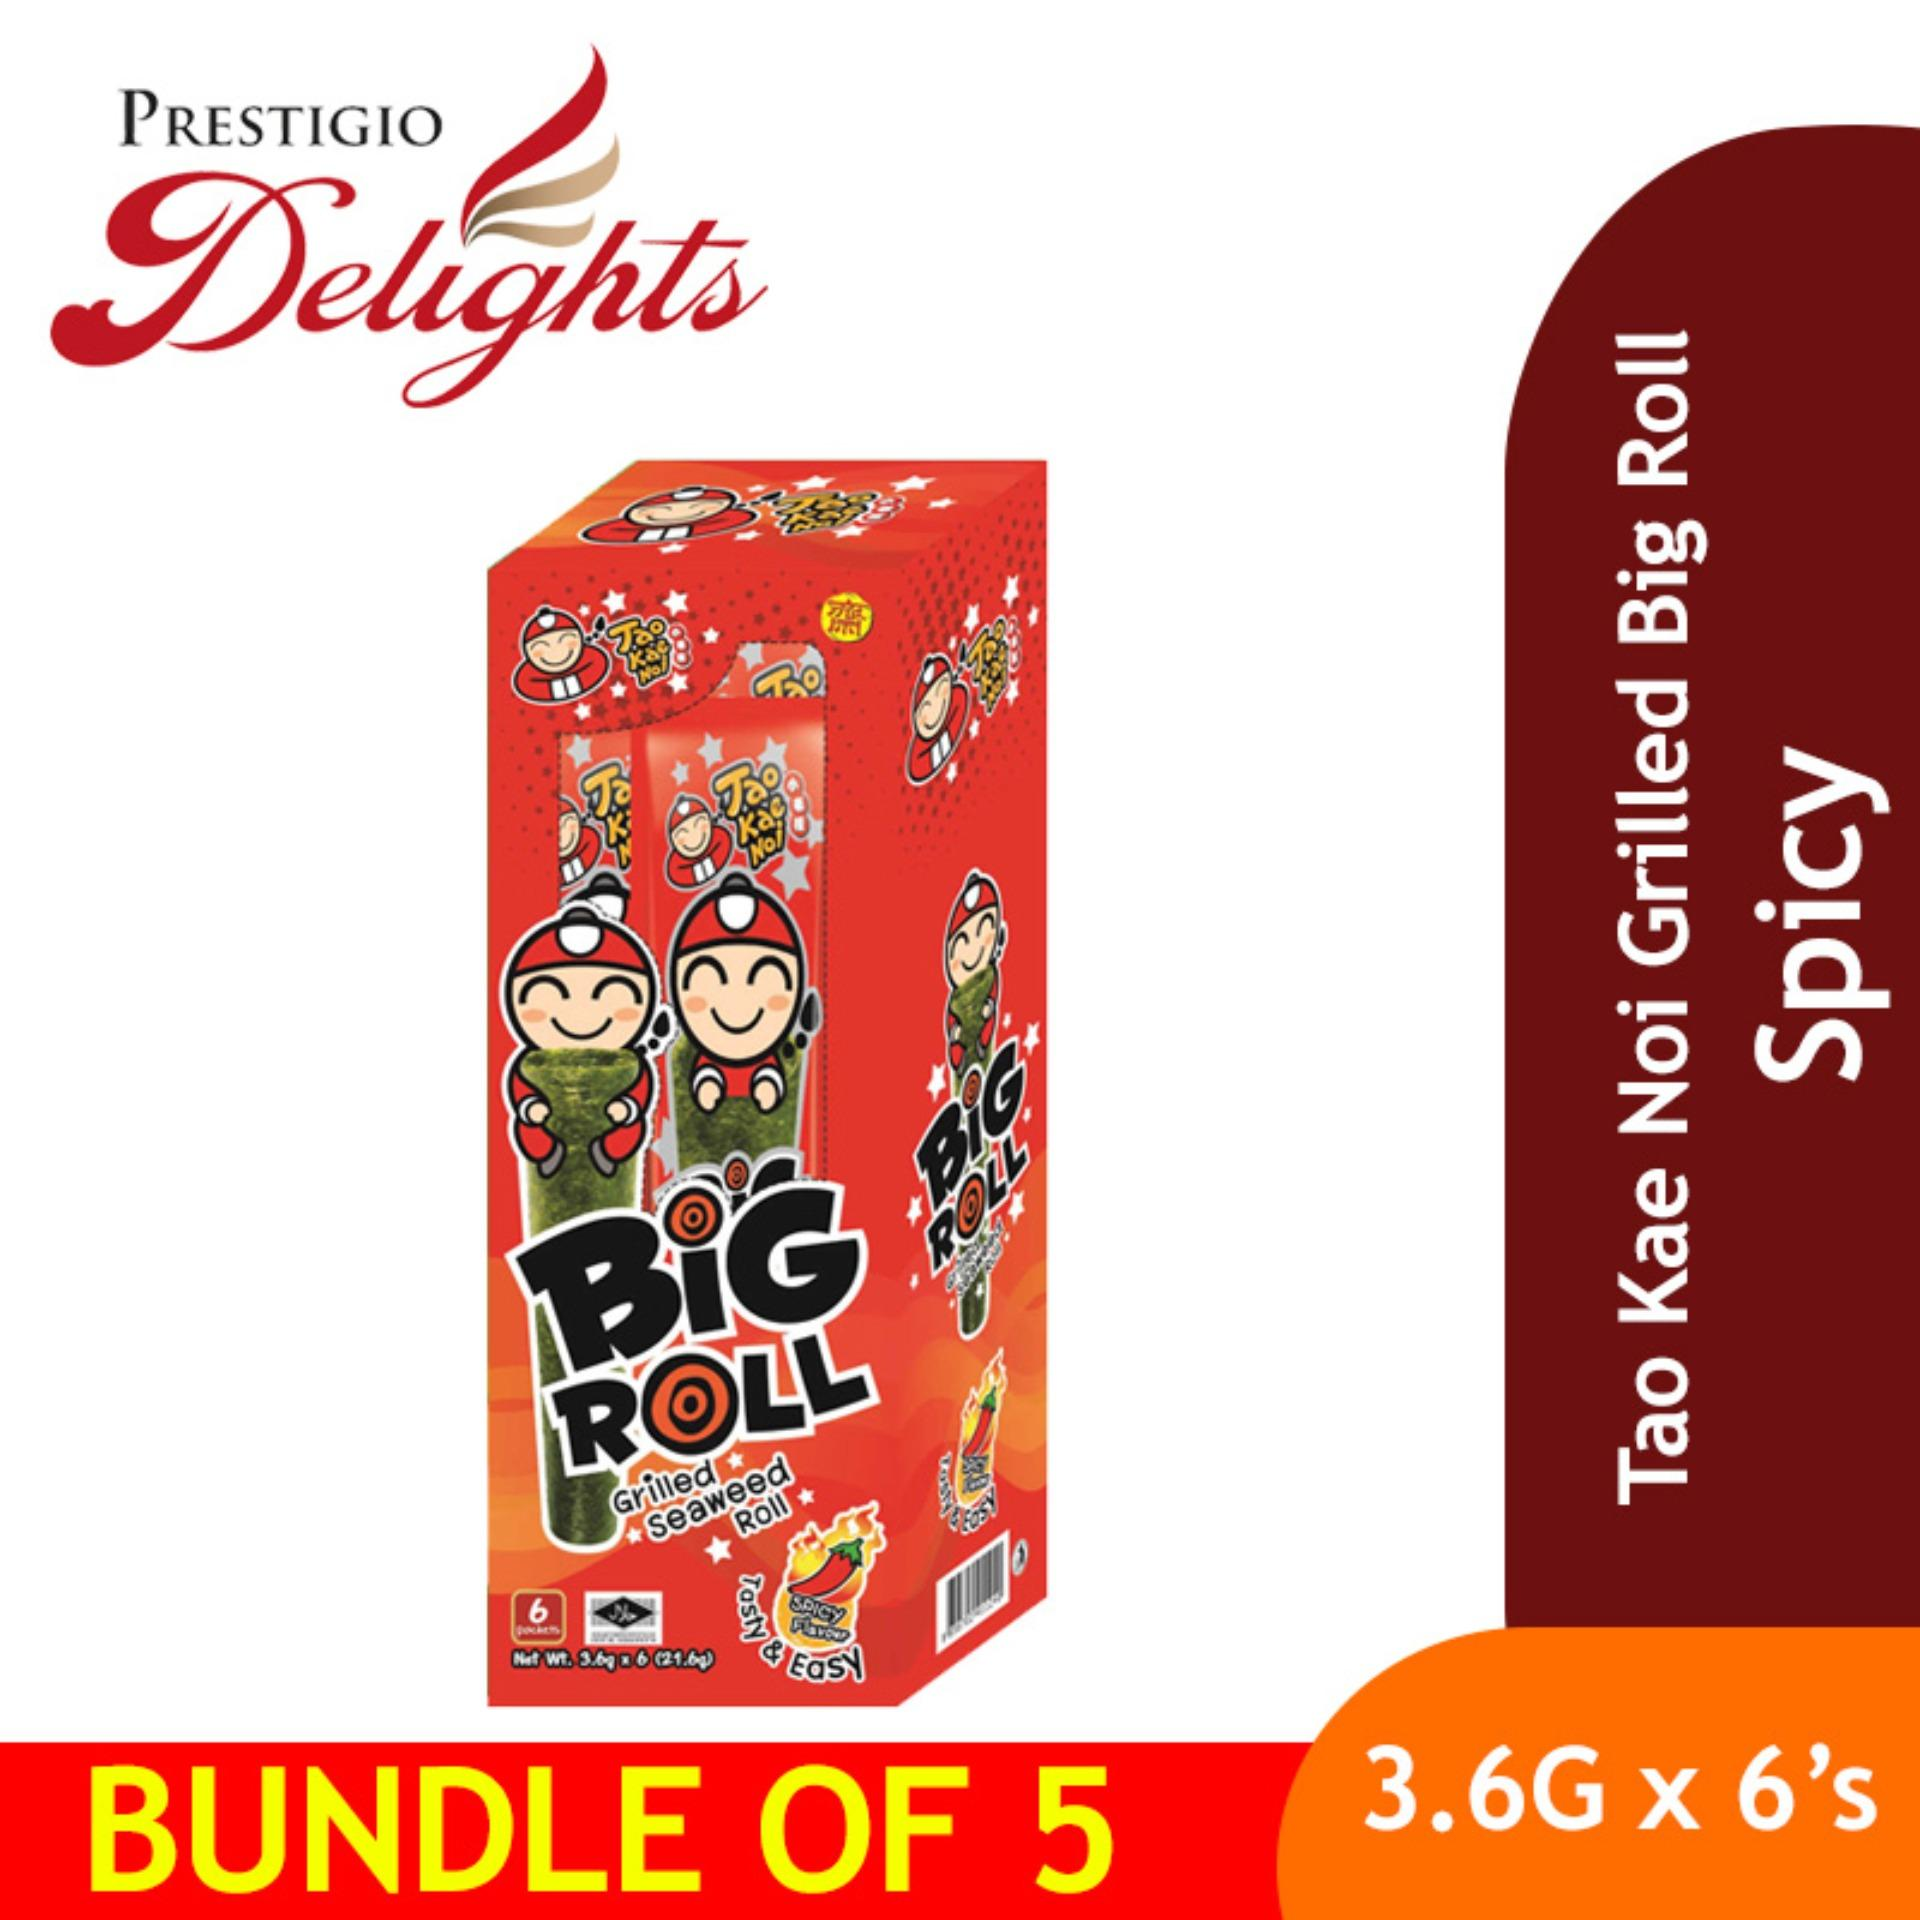 Tao Kae Noi Grilled Big Roll Spicy 3.6g Bundle Of 5 By Prestigio Delights.